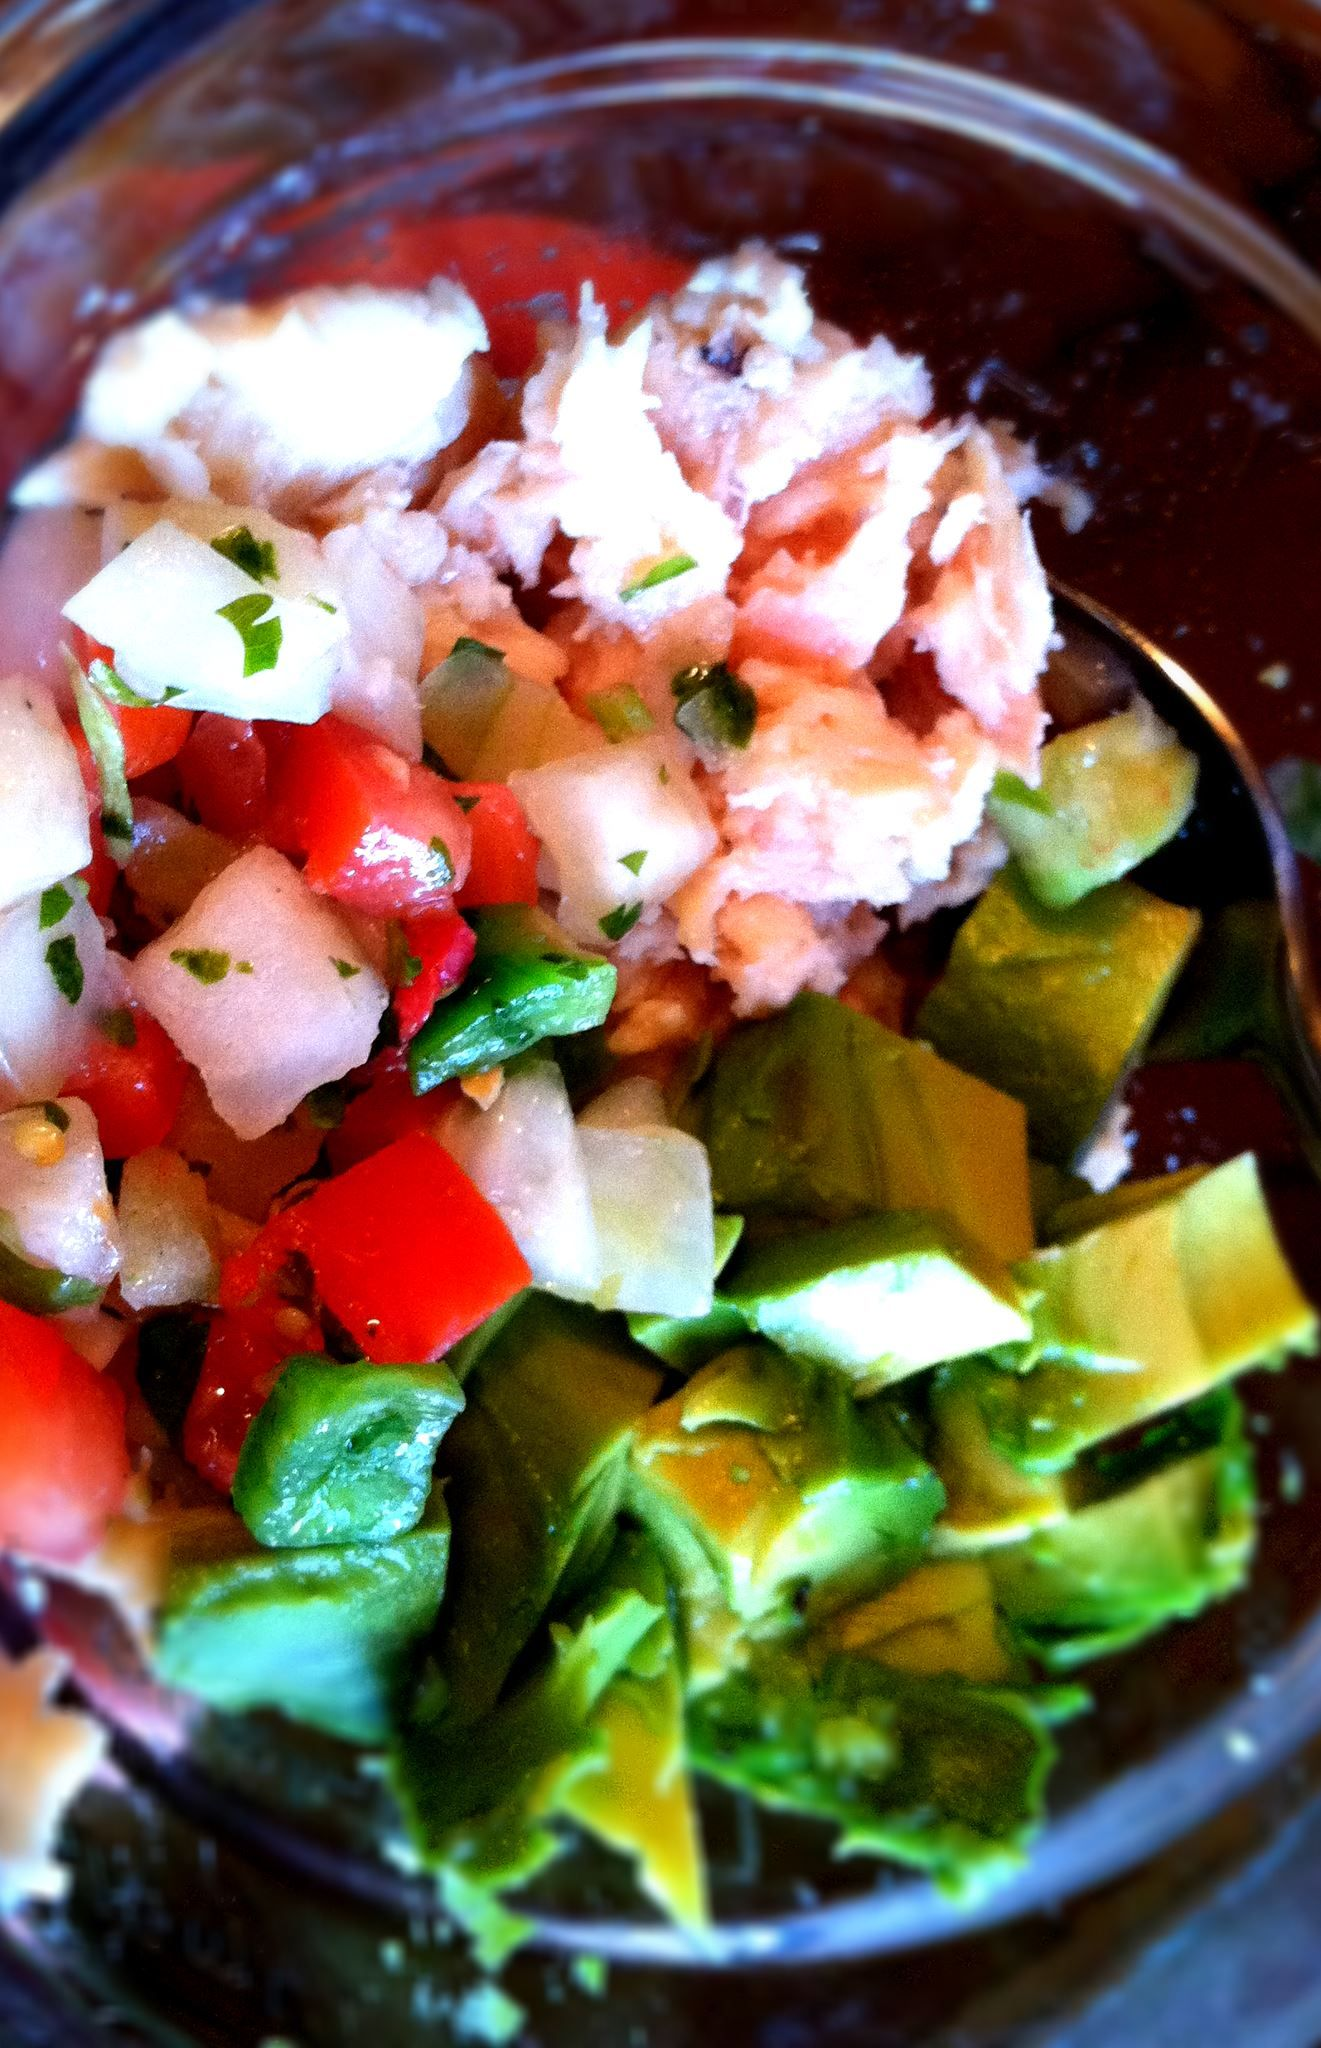 Looking for a healthier mix-in for tuna? Try avocado and pico with a little salt and pepper!  Check out more healthy recipes like this at: www.amptfit.com/blog